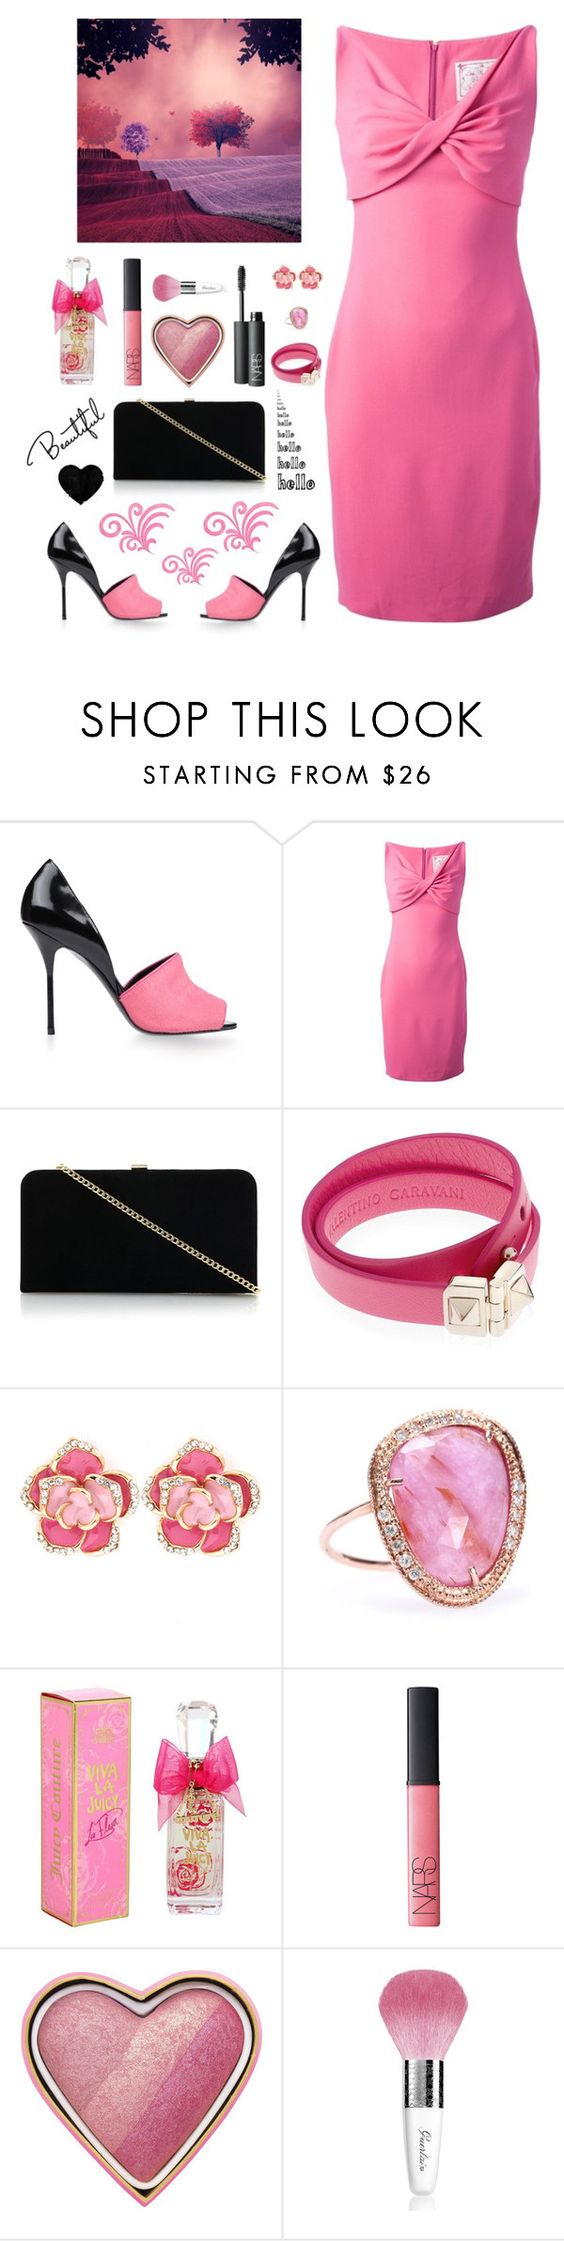 """In love with Pink.."" by k-peach ❤ liked on Polyvore featuring Pierre Hardy, Dsquared2, Dune, Valentino, Jacquie Aiche, Juicy Couture, NARS Cosmetics, Too Faced Cosmetics and Guerlain"